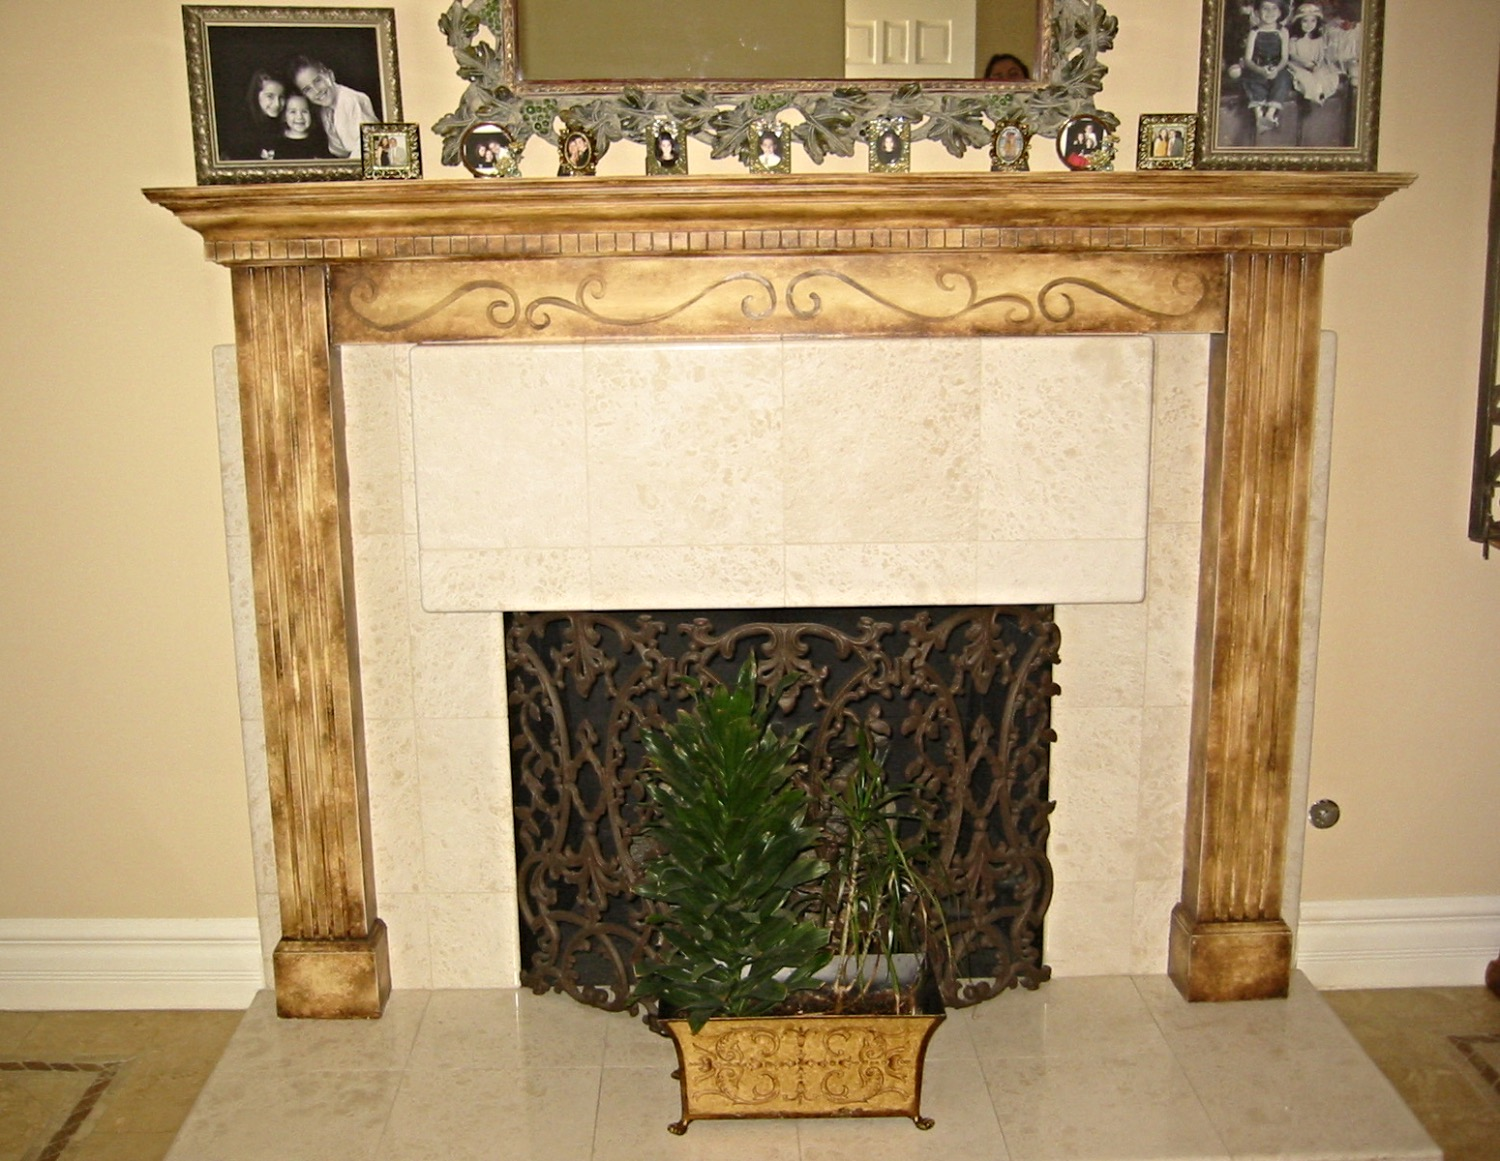 Heavily antiqued fireplace